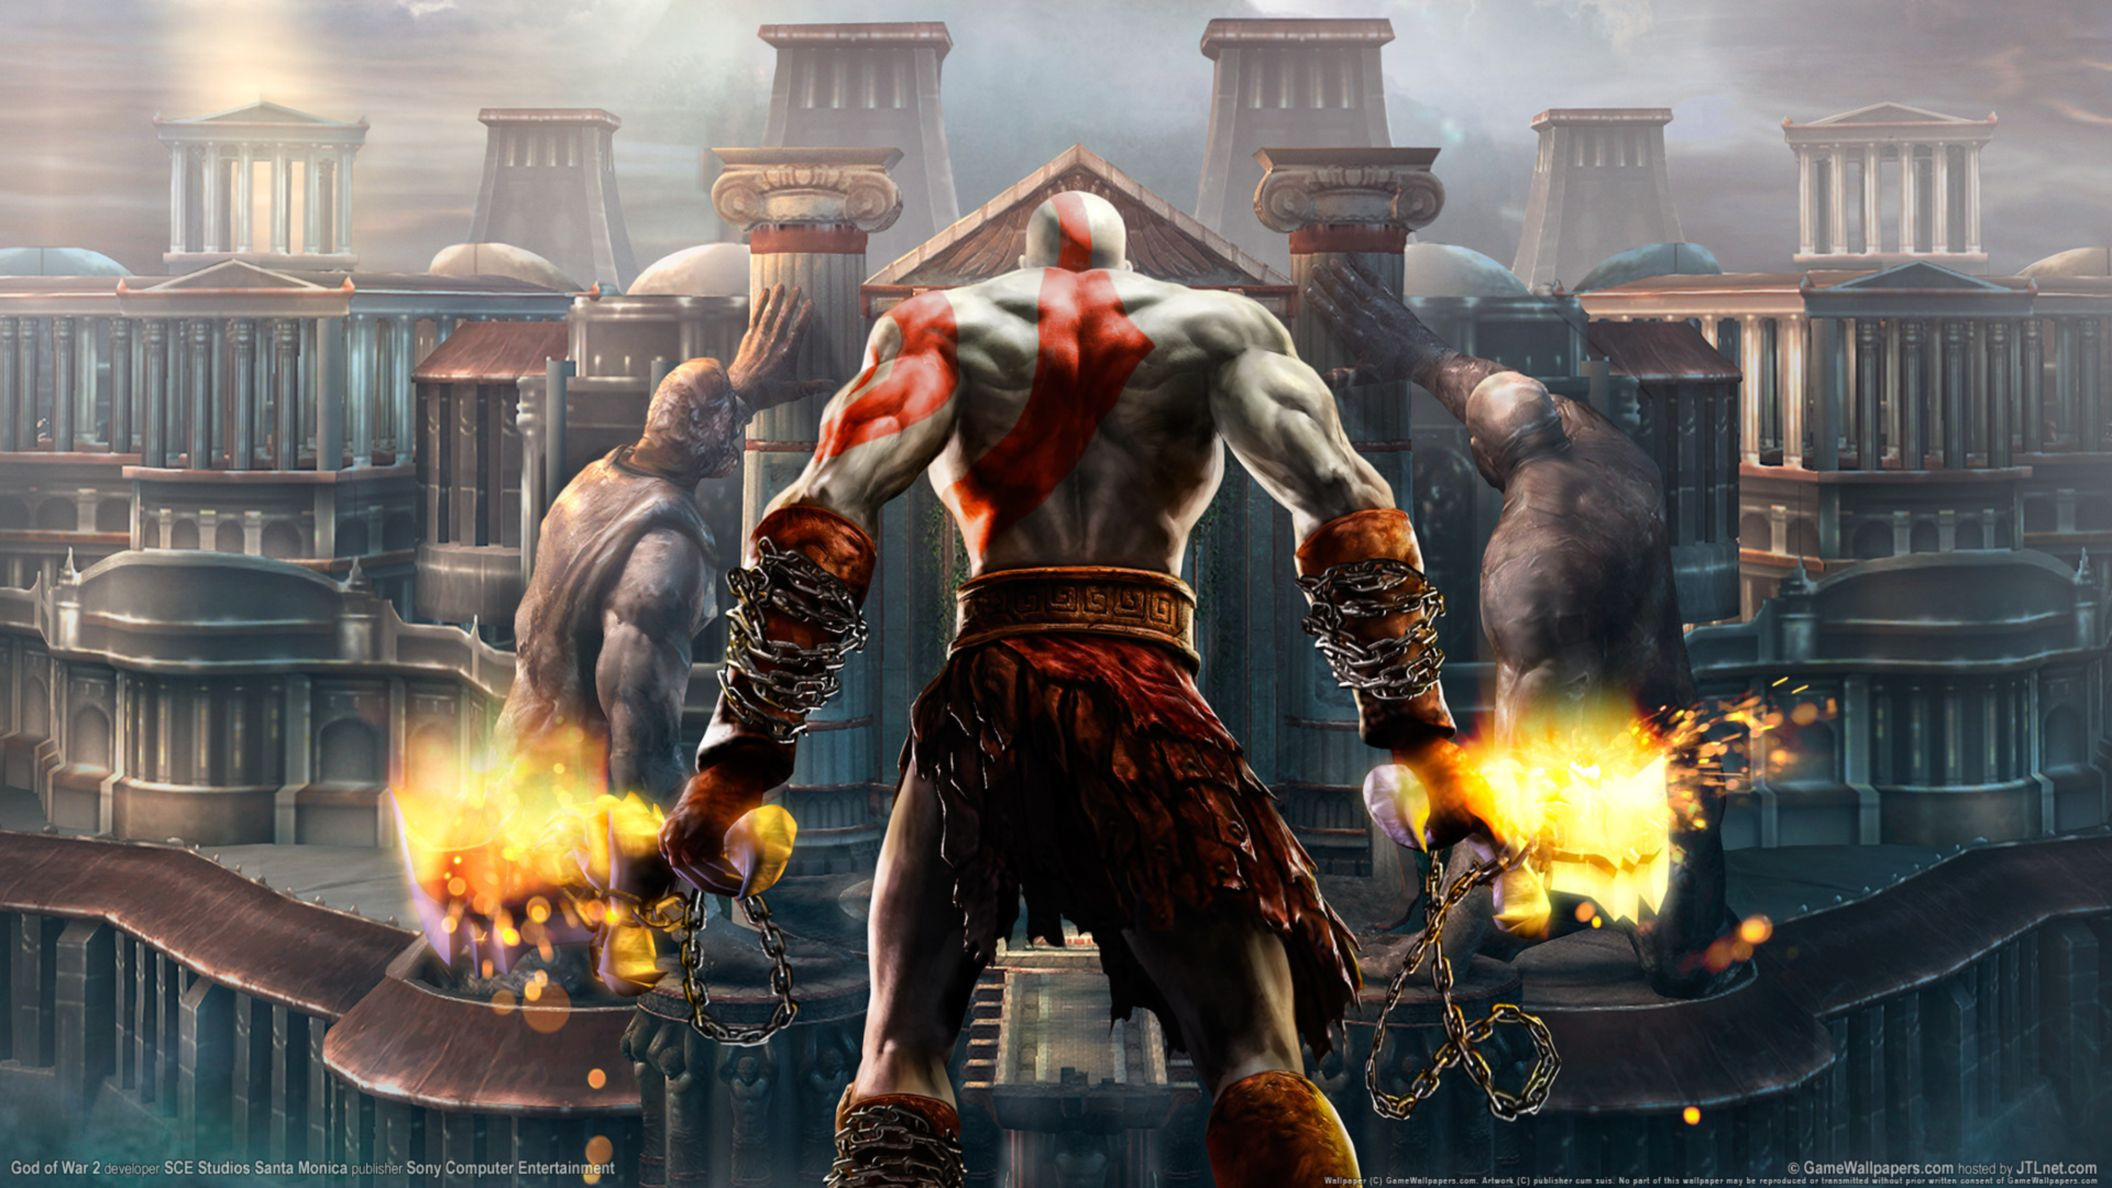 Download free HD God of War 2 HD HD Wallpaper, image